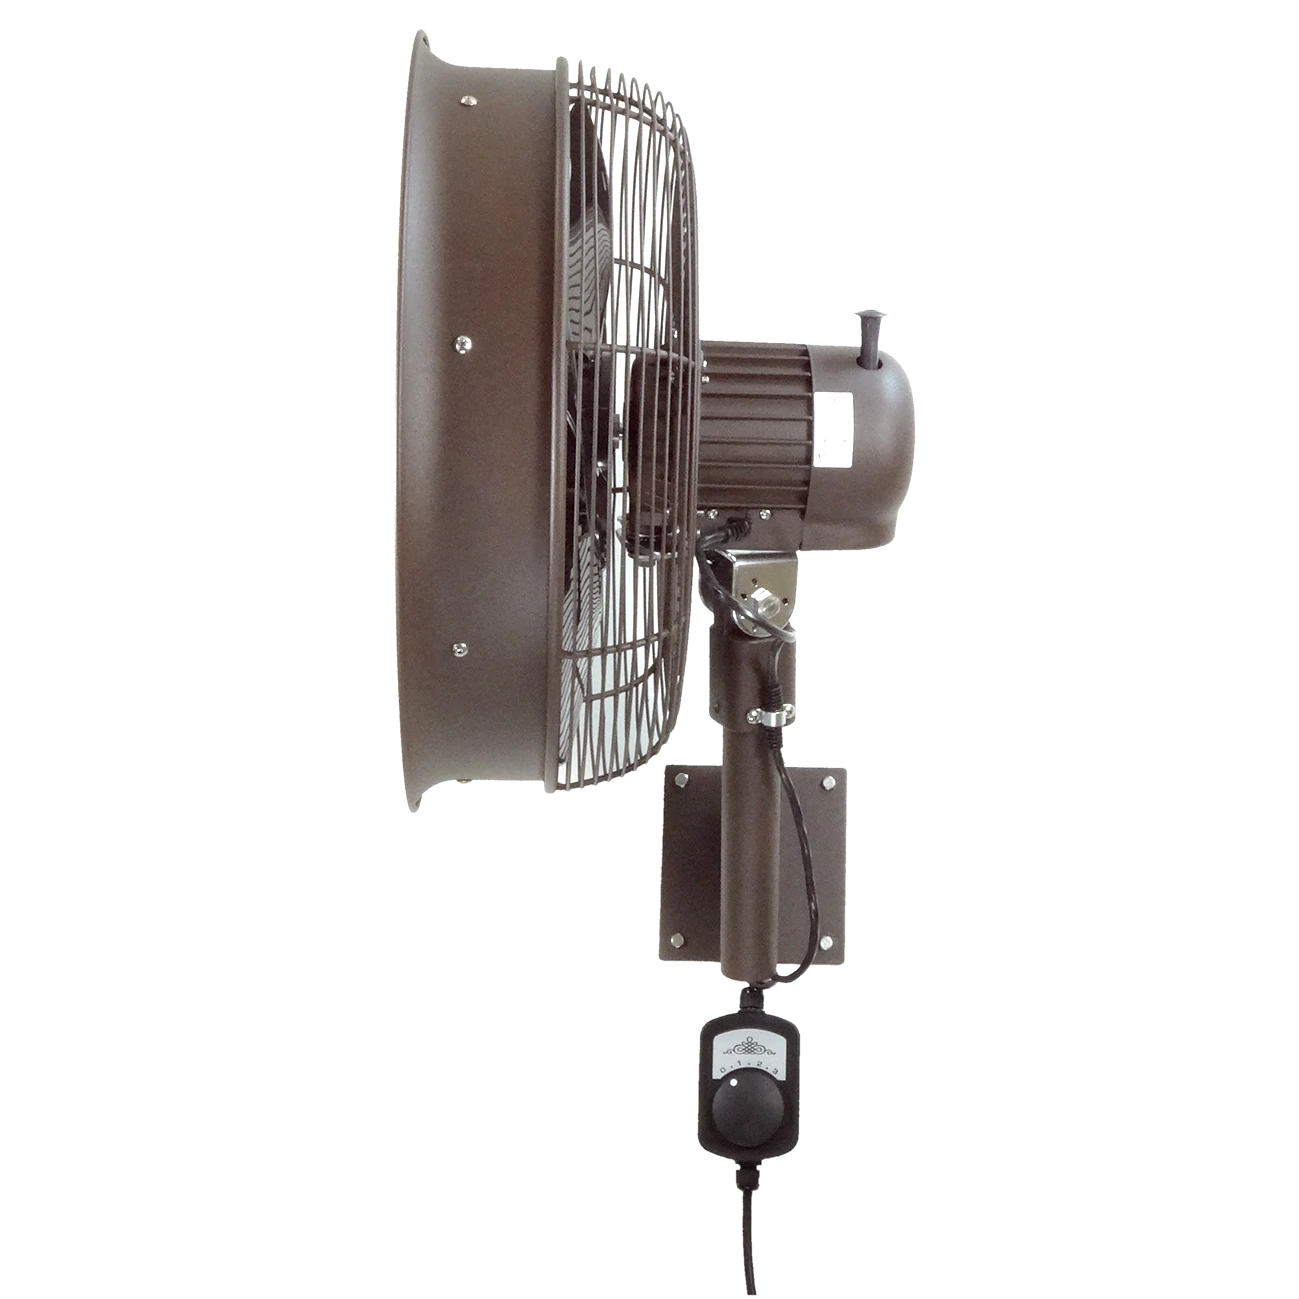 side view of Outdoor 18 Inch Shrouded Oscillating Fan only-3 speed control on cord